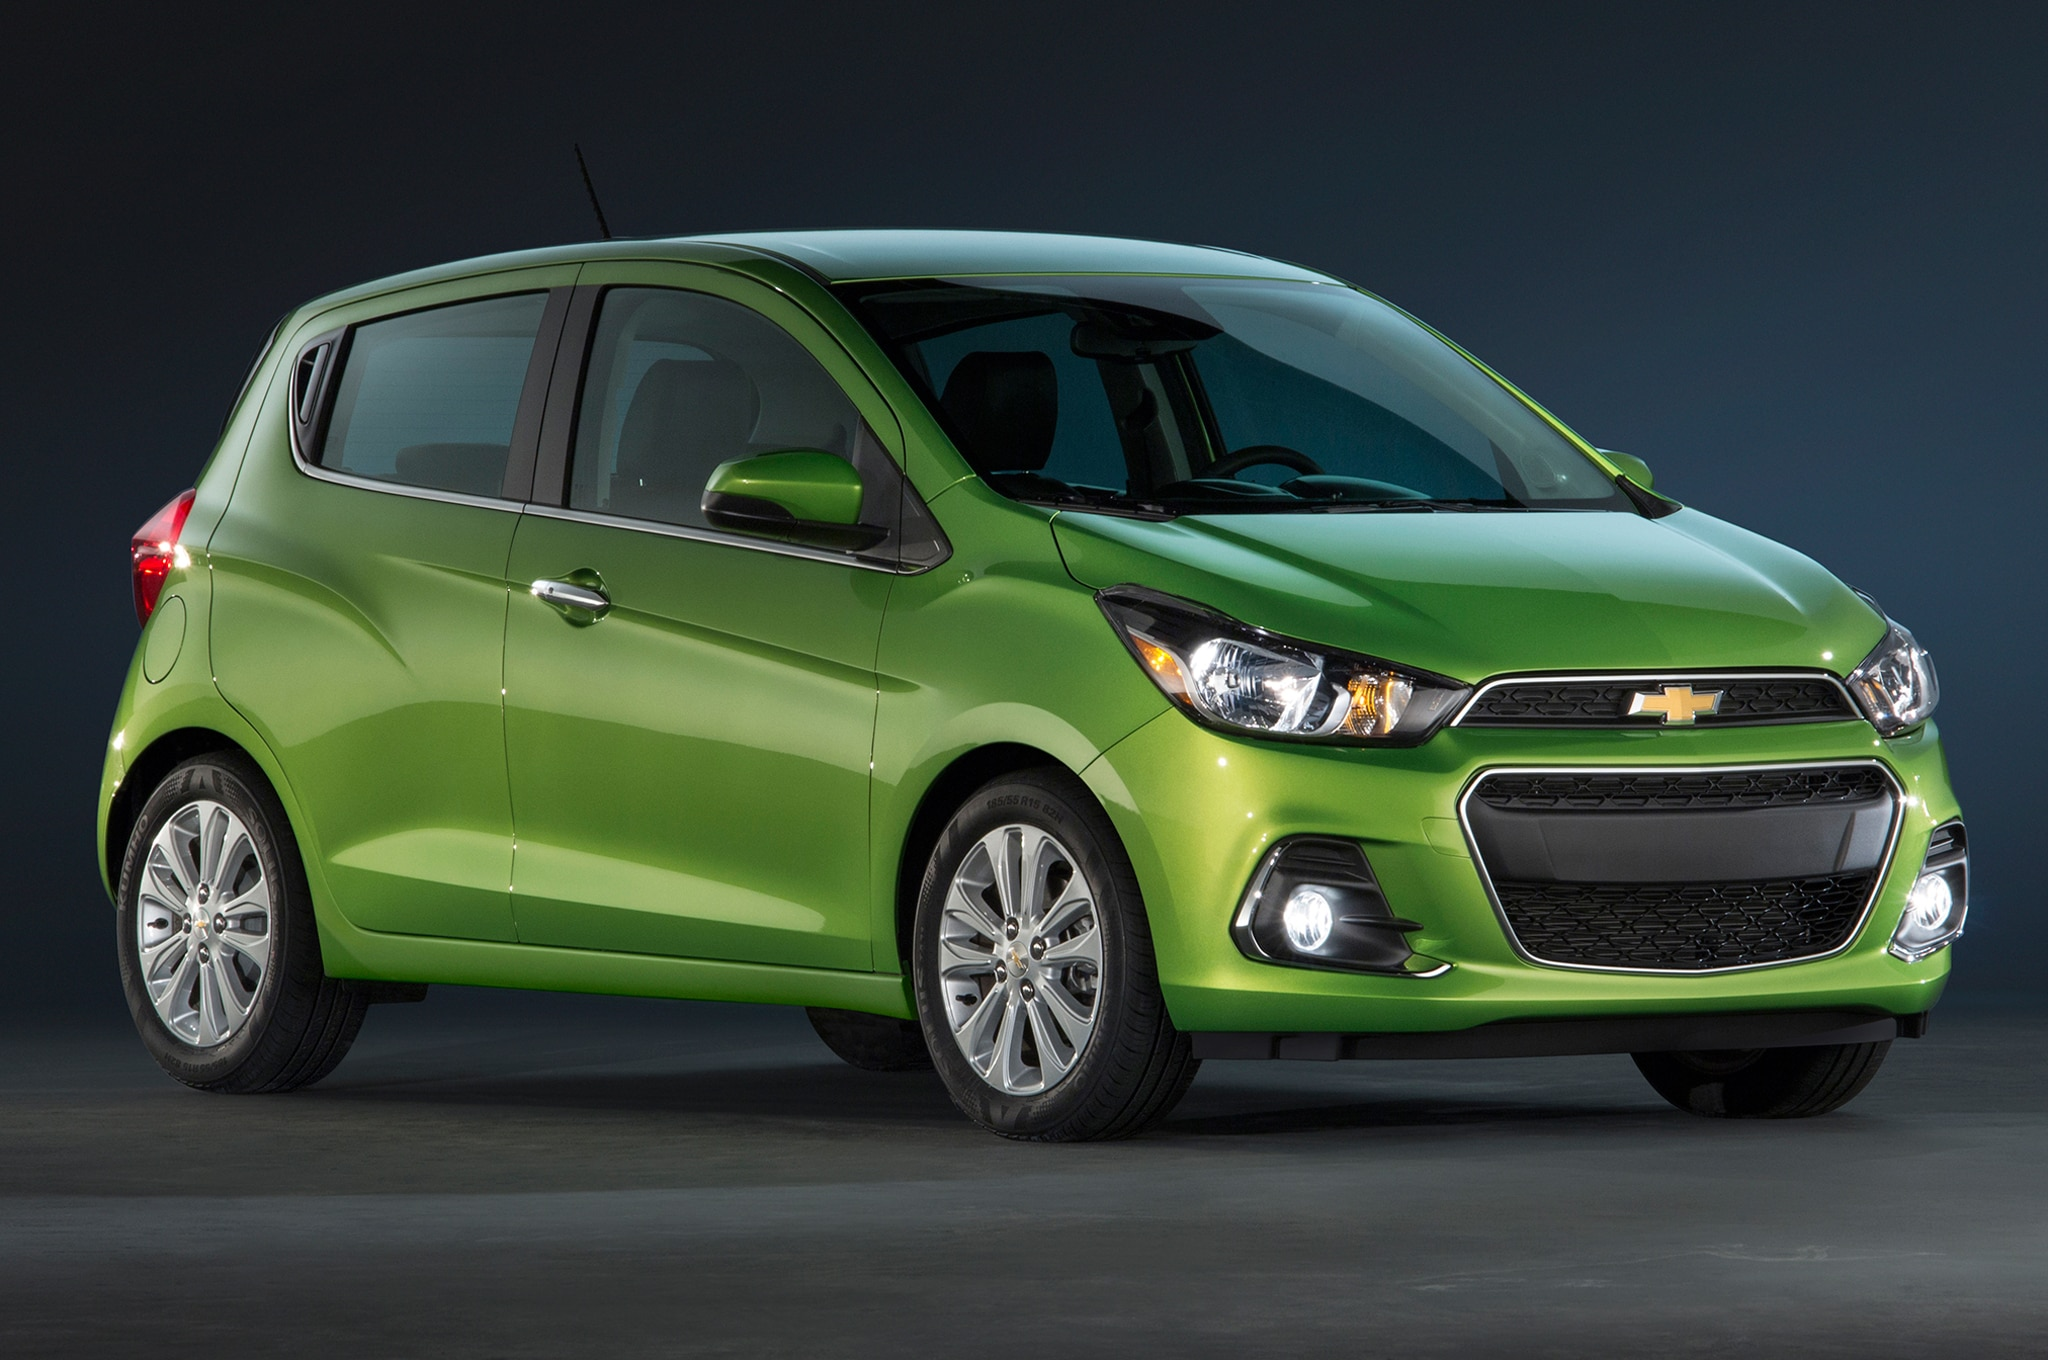 2016 Chevrolet Spark front three quarter 2016 chevrolet spark revealed in new york car fuse box sparking at mifinder.co